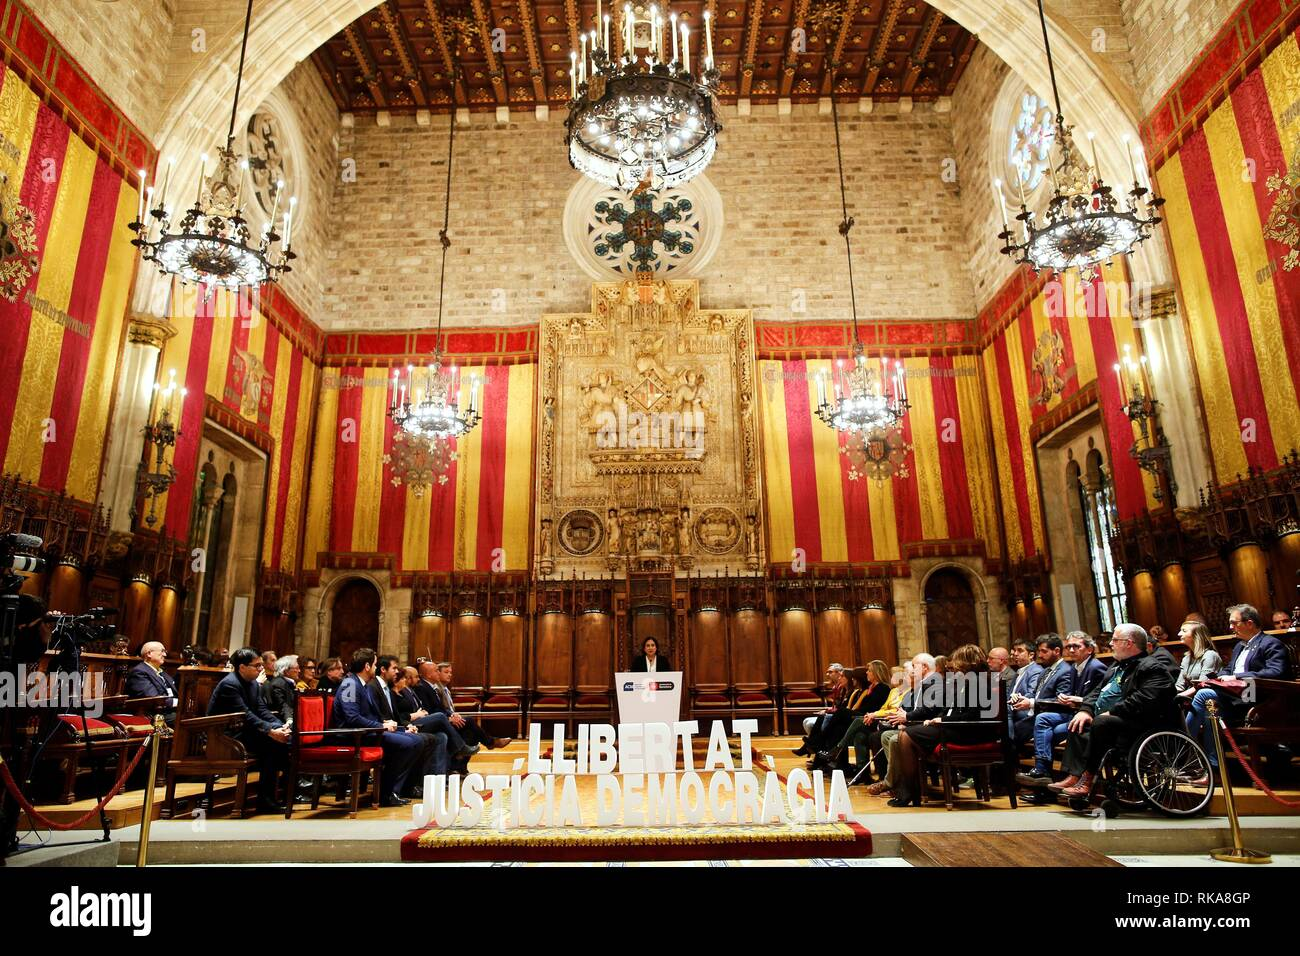 Barcelona, Spain. 10th Feb, 2019. Barcelona's Mayor Ada Colau (C), delivers a speech behind a banner reading in Catalan 'Freedom, Justice, Democracy' as some 400 Catalan mayors attend an event at Barcelona's City Hall to reject the trial of Catalan pro-independence leaders, in Barcelona, Spain, 10 February 2019. The participants asked for defendants' rights and basic liberties are respected, as well.The trial of Catalan pro-independence leaders begins at Madrid's High Court next 12 February. Credit: Alejandro Garcia/EFE/Alamy Live News - Stock Image